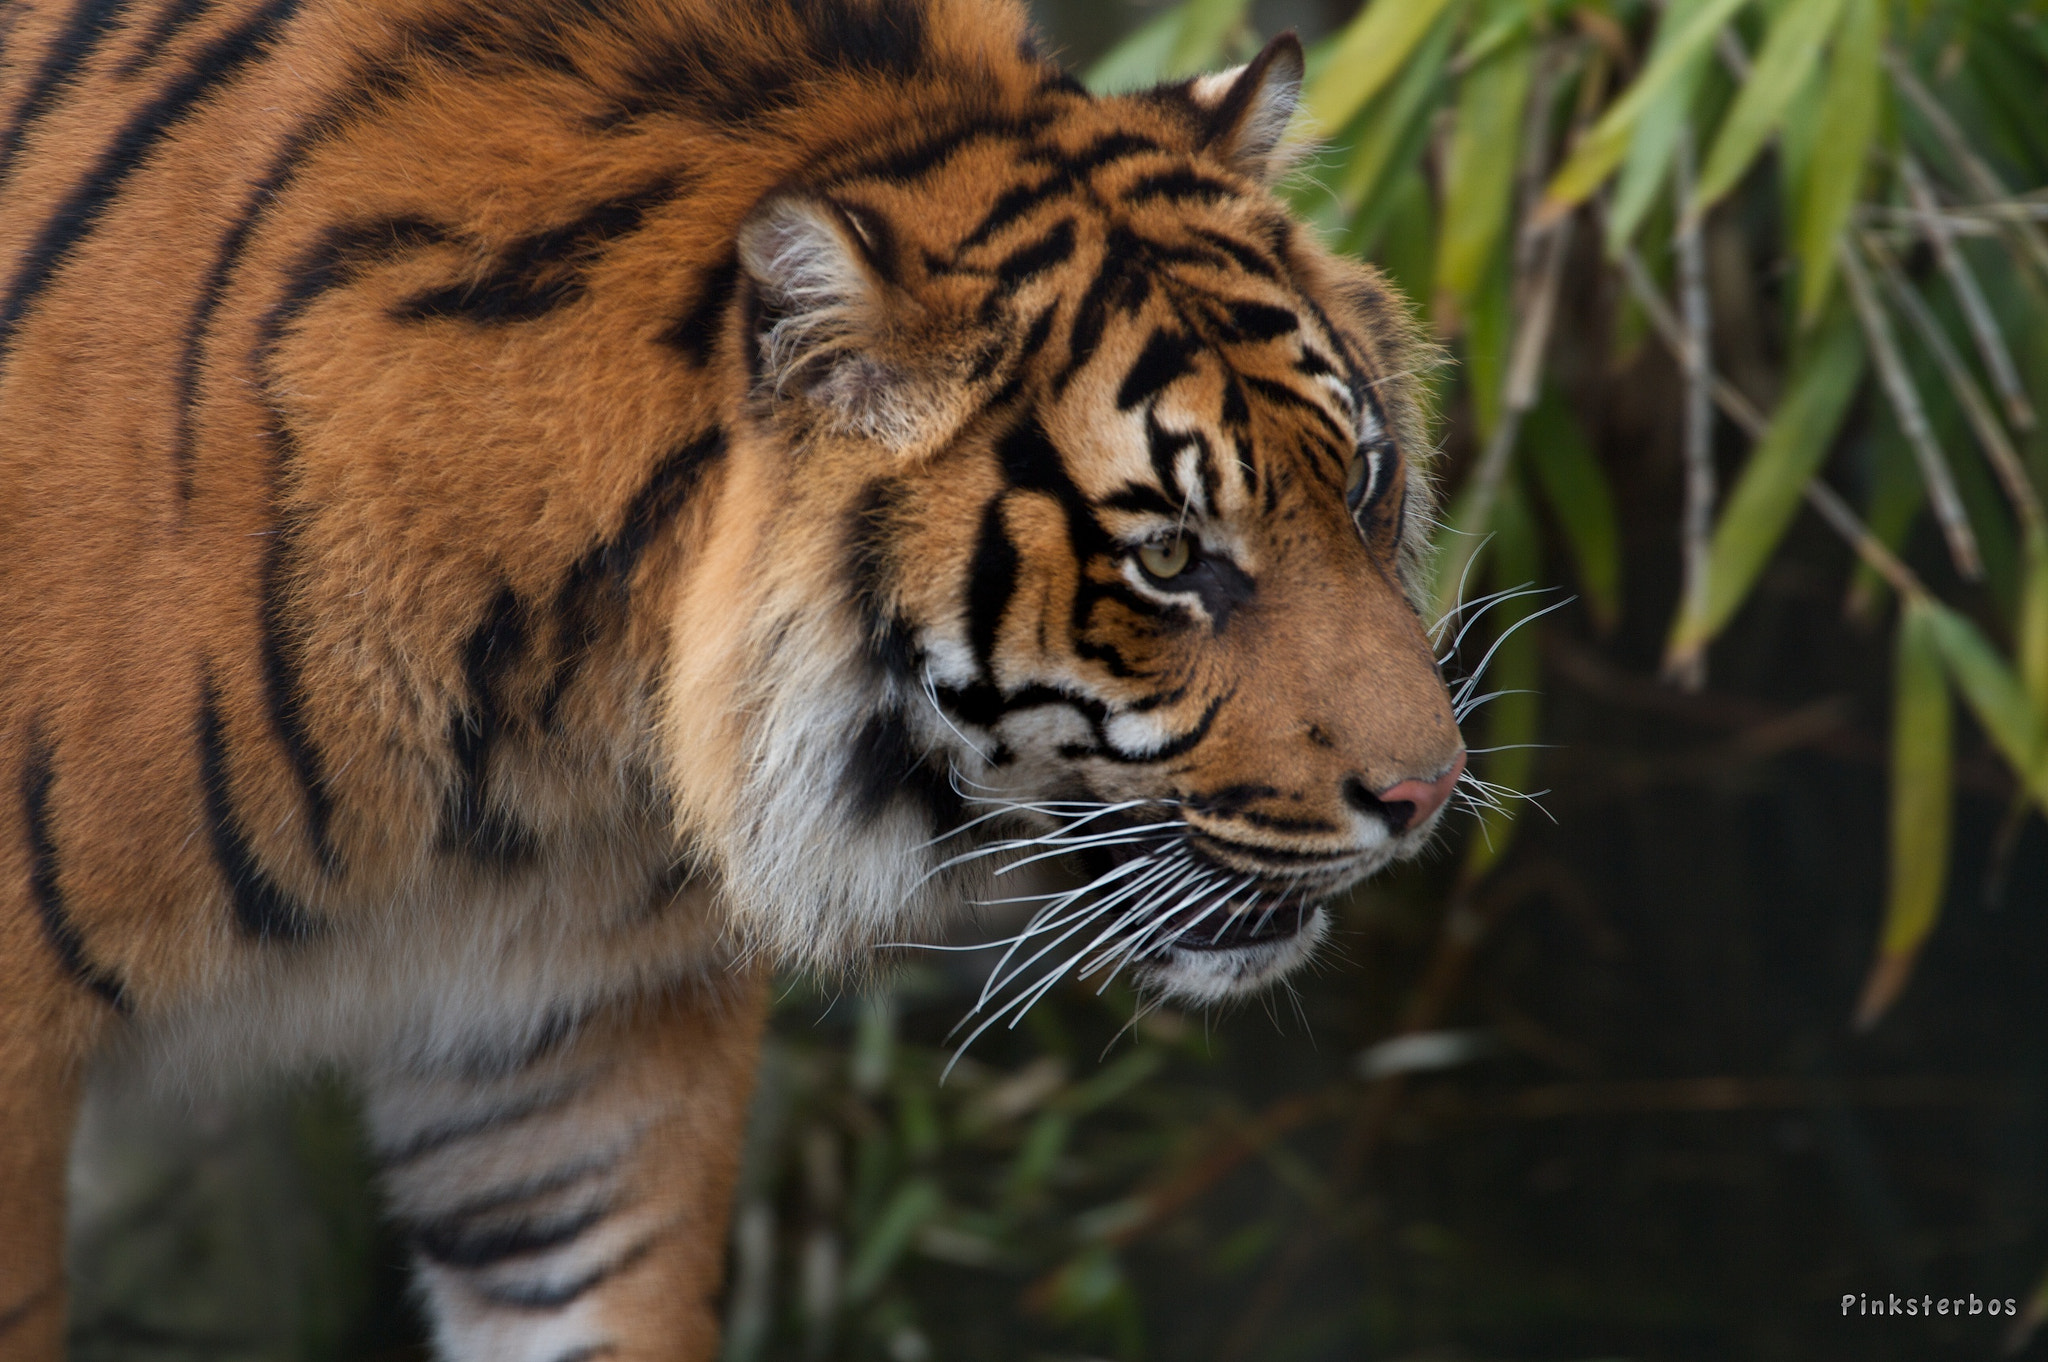 Photograph Tiger by Familie Pinksterbos on 500px